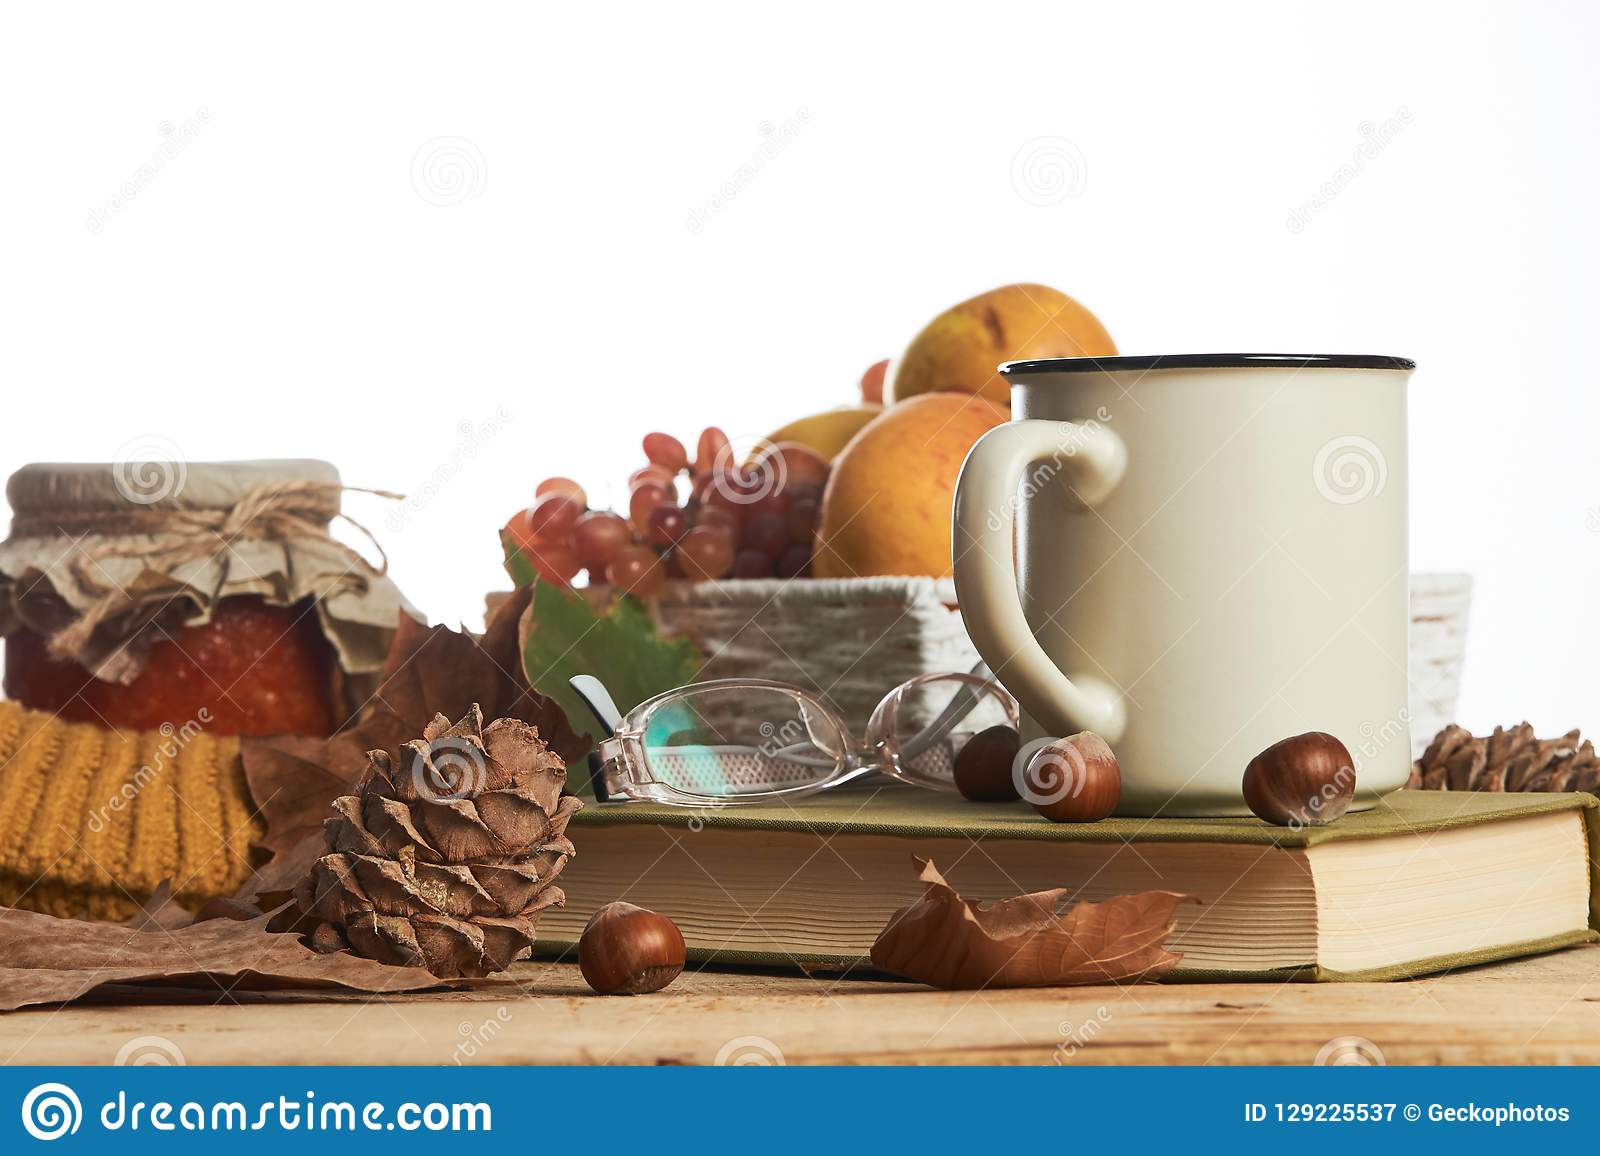 Hot coffee cup old book glasses and autumn leaves with fruit basket